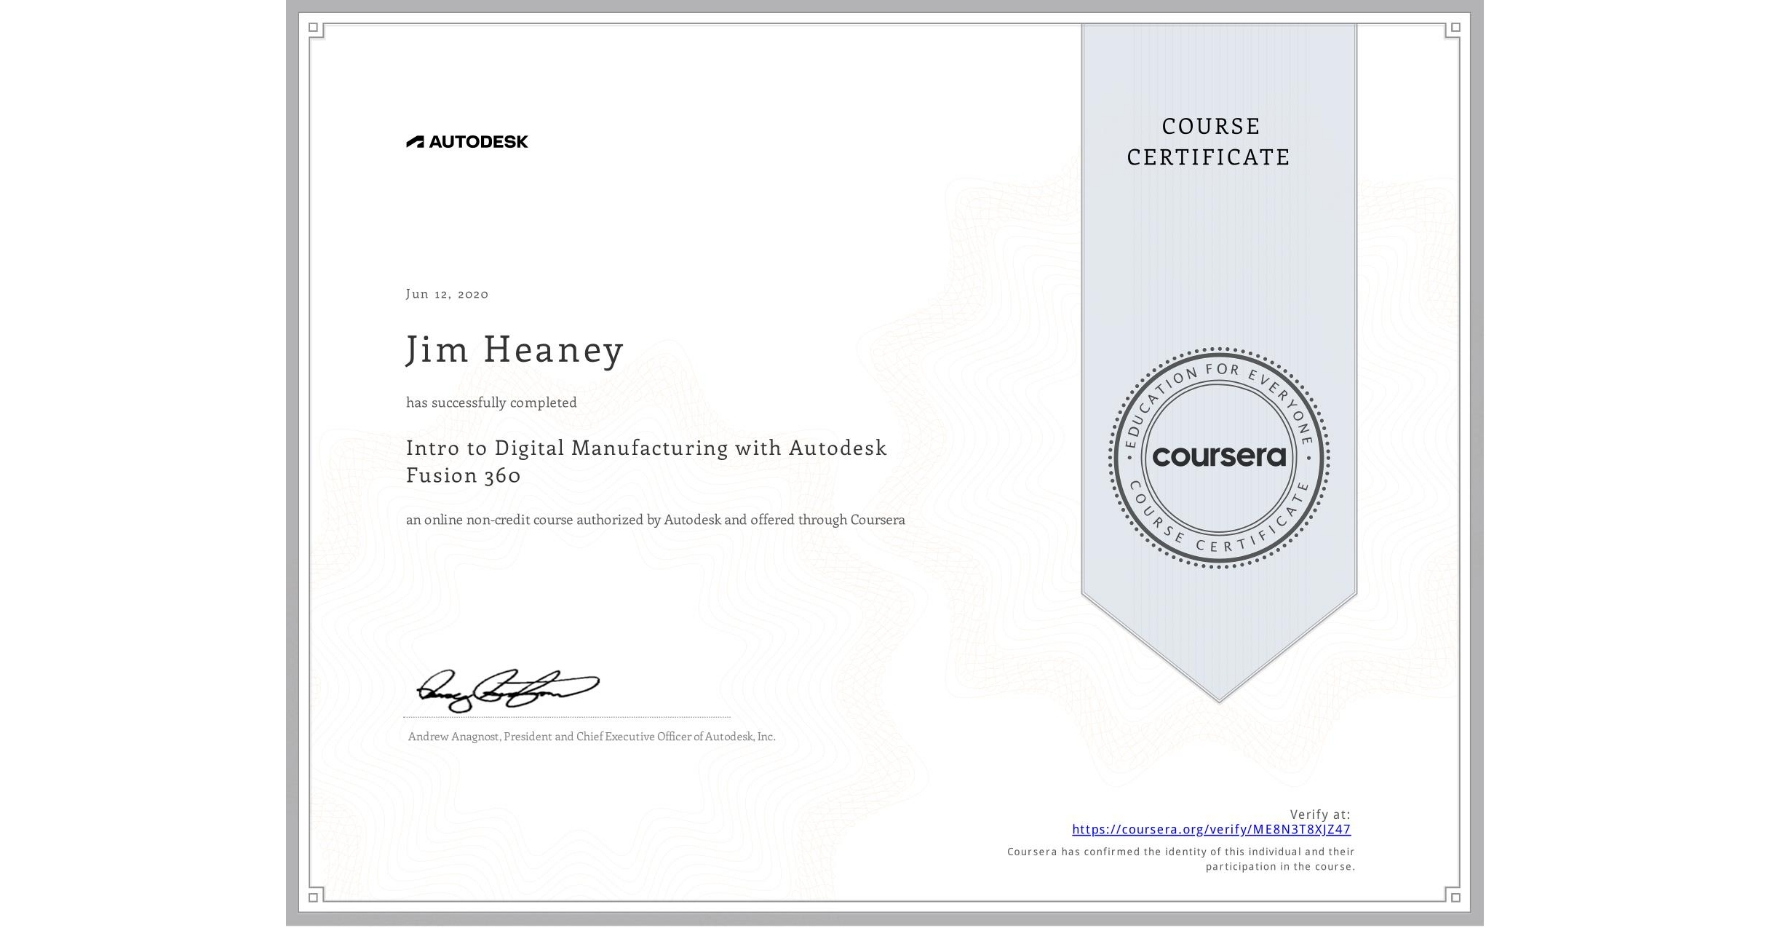 View certificate for Jim Heaney, Intro to Digital Manufacturing with Autodesk Fusion 360, an online non-credit course authorized by Autodesk and offered through Coursera